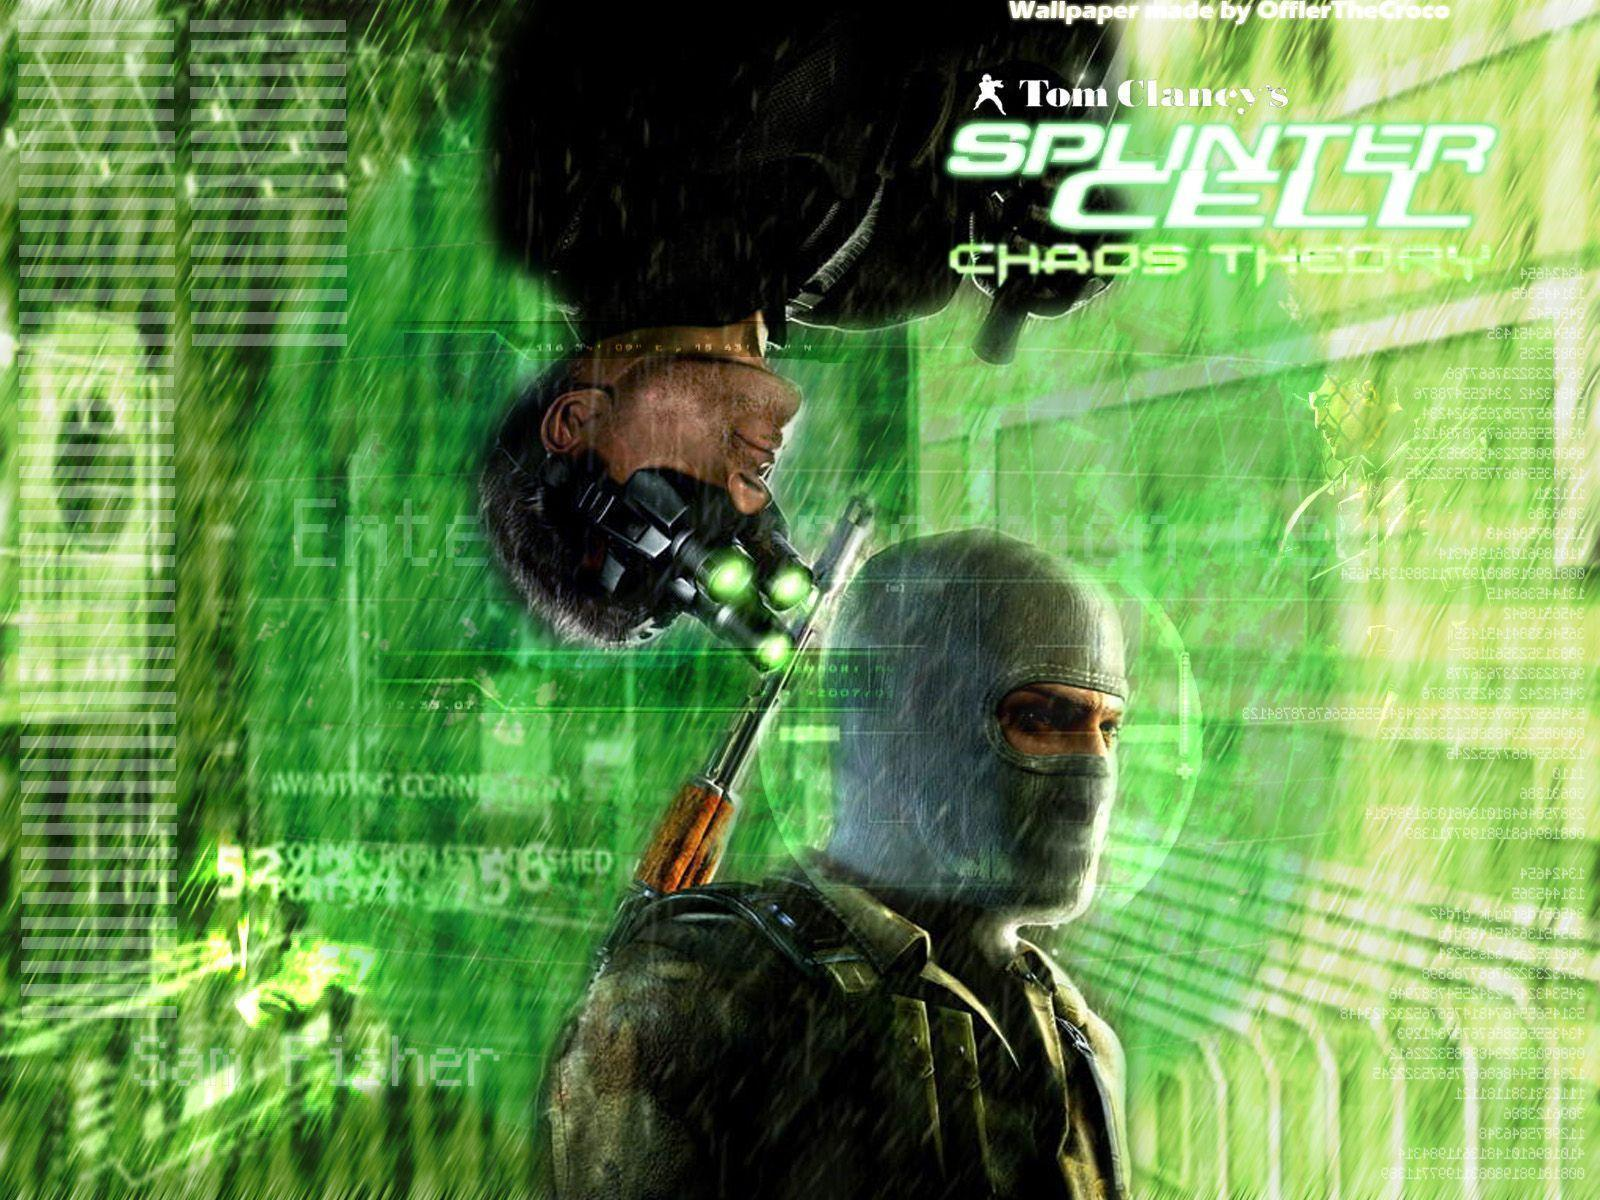 Splinter Cell Chaos Theory Wallpapers - Wallpaper Cave